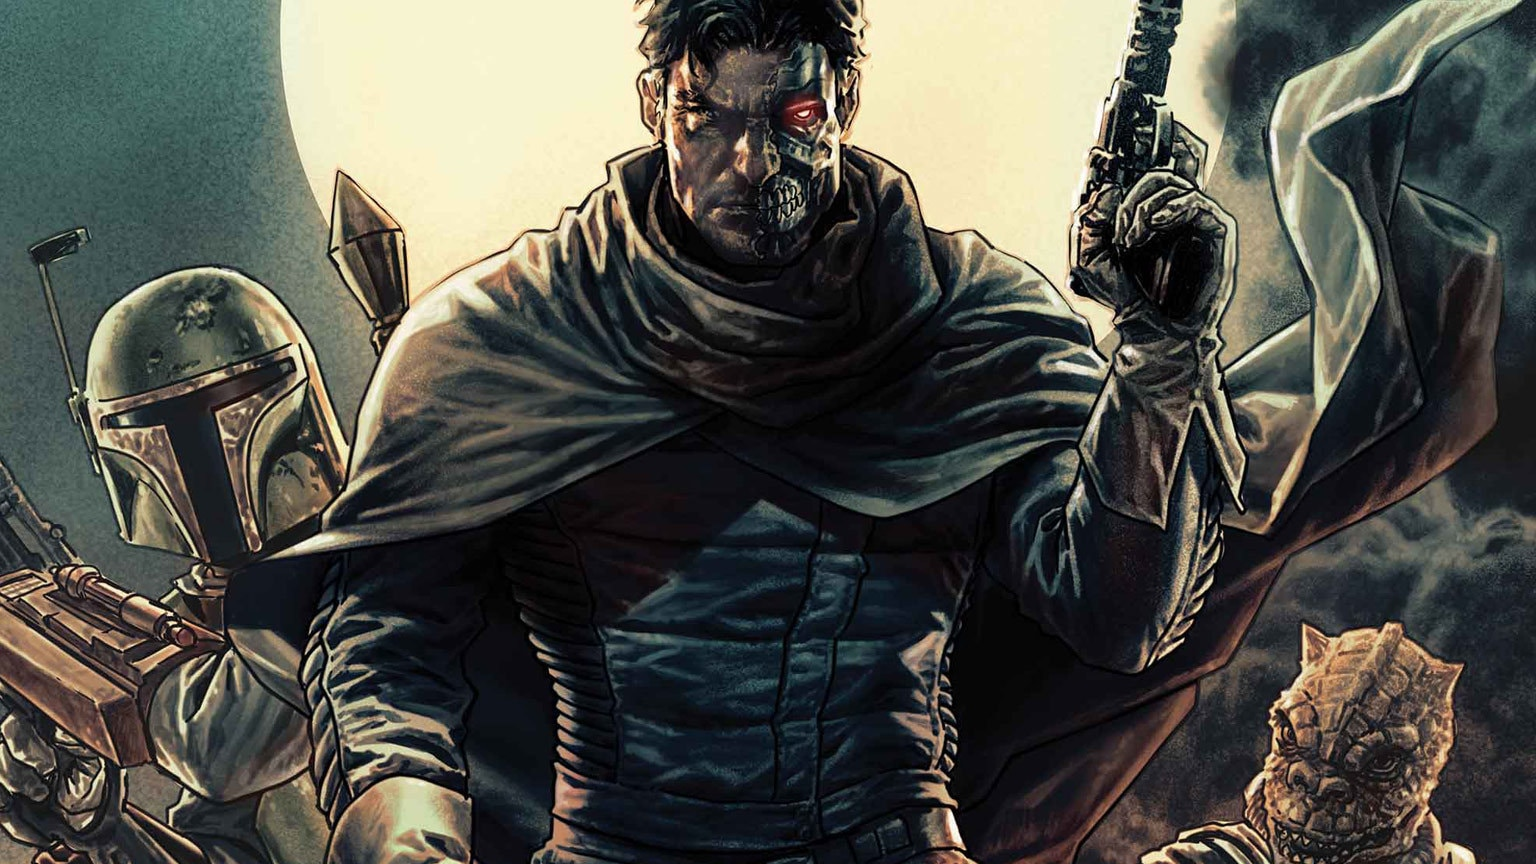 Revenge Rules in Marvel's Bounty Hunters, Set for March 2020 – Exclusive